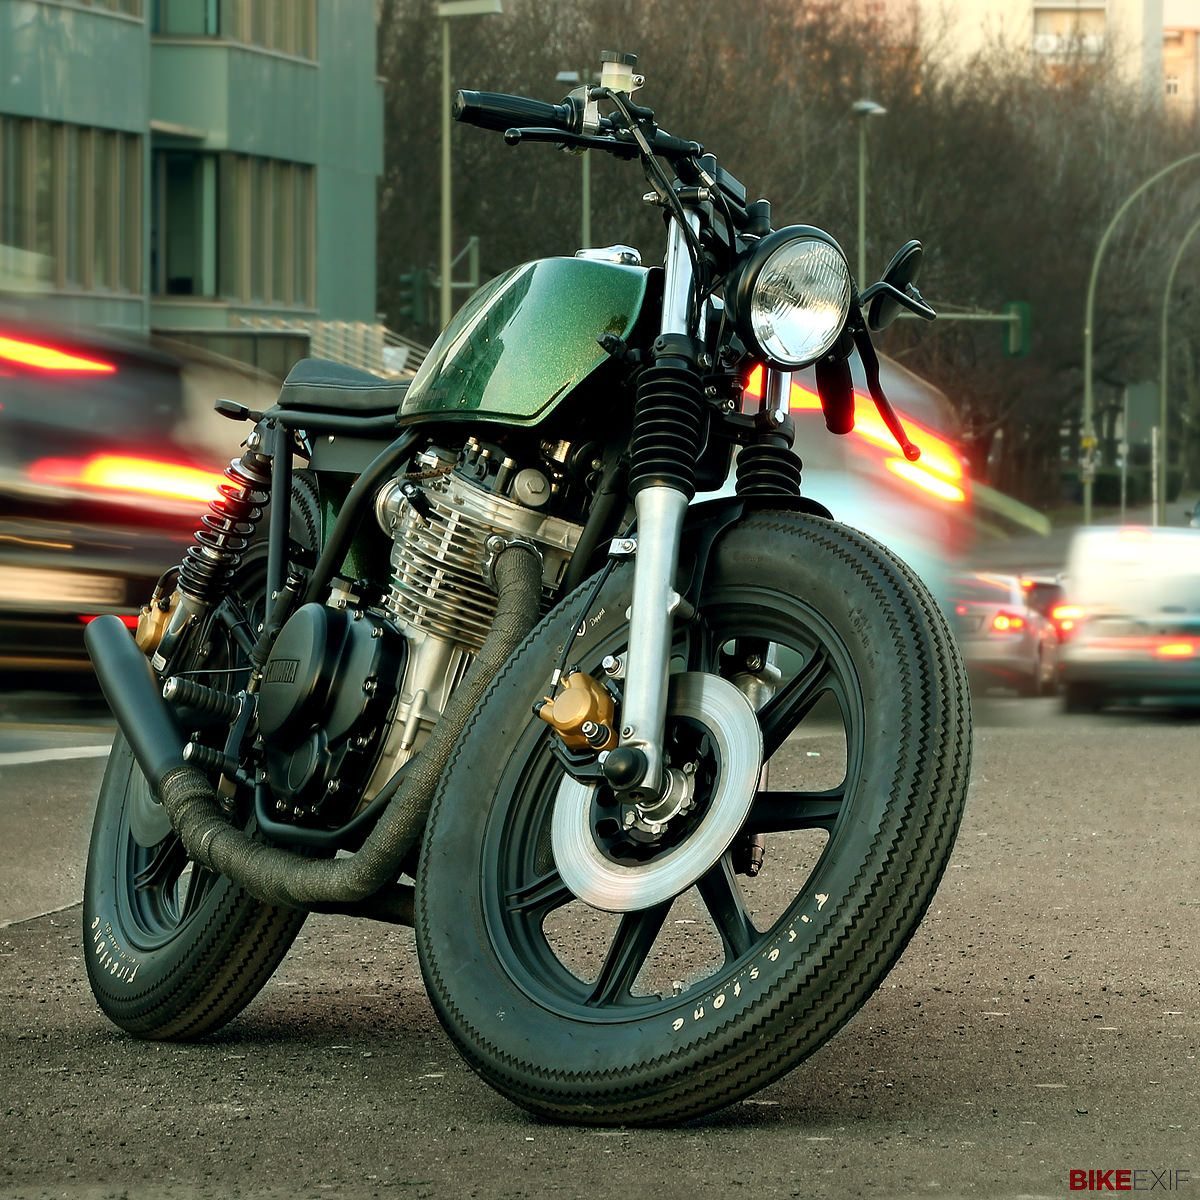 Berlin-based Urban Motor are famous for their BMW customs, but workshop owner Peter Dannenberg rides around on this very sharp 1978 Yamaha XS400. 썬시티카지노 http://cmd17.com 썬시티카지노 썬시티카지노썬시티카지노 썬시티카지노 썬시티카지노